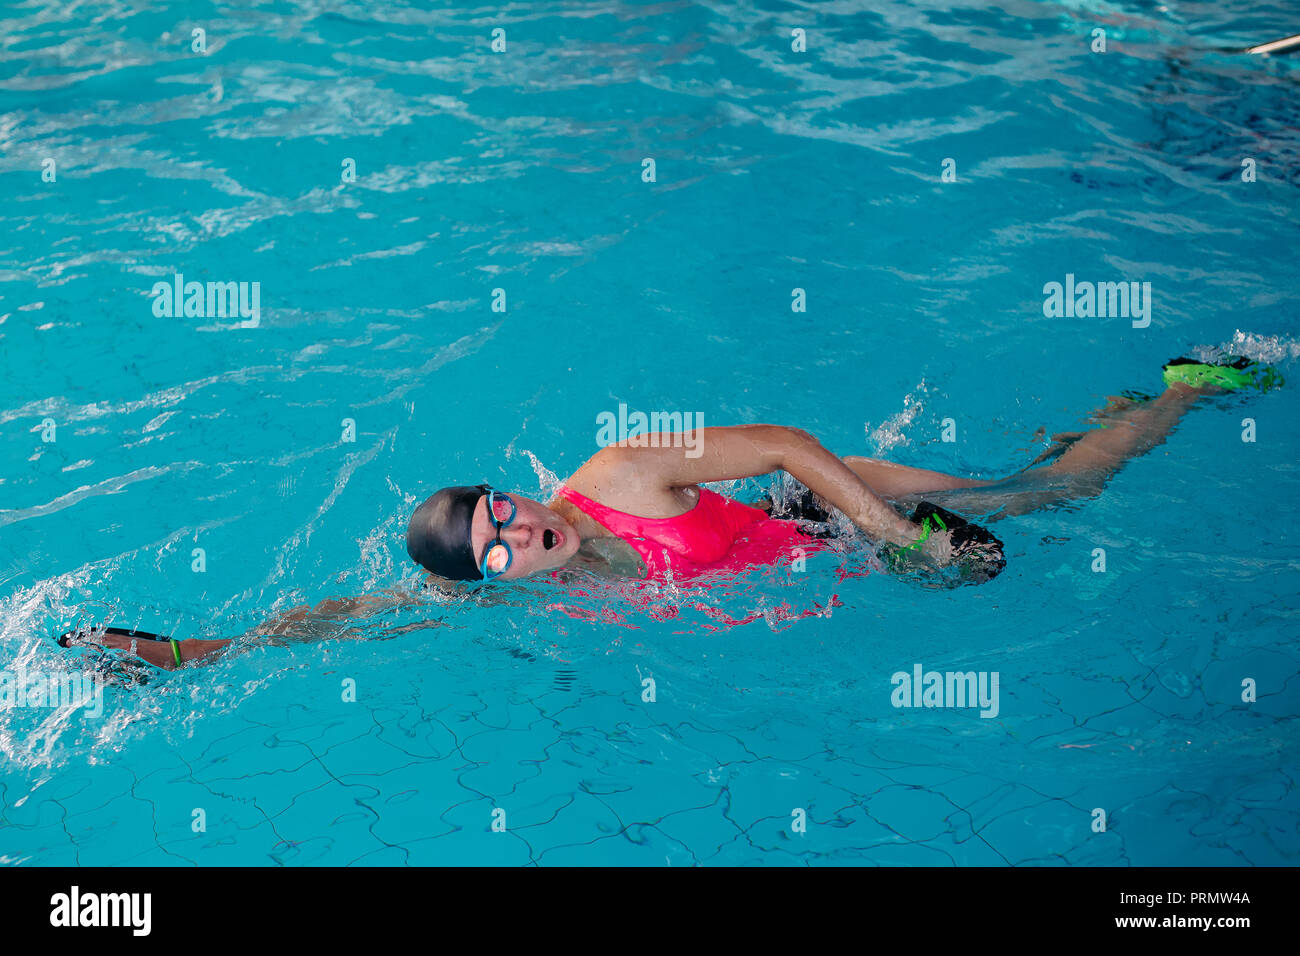 Swimming swimmer freestyle female stock photos swimming - How to make swimming pool water blue ...